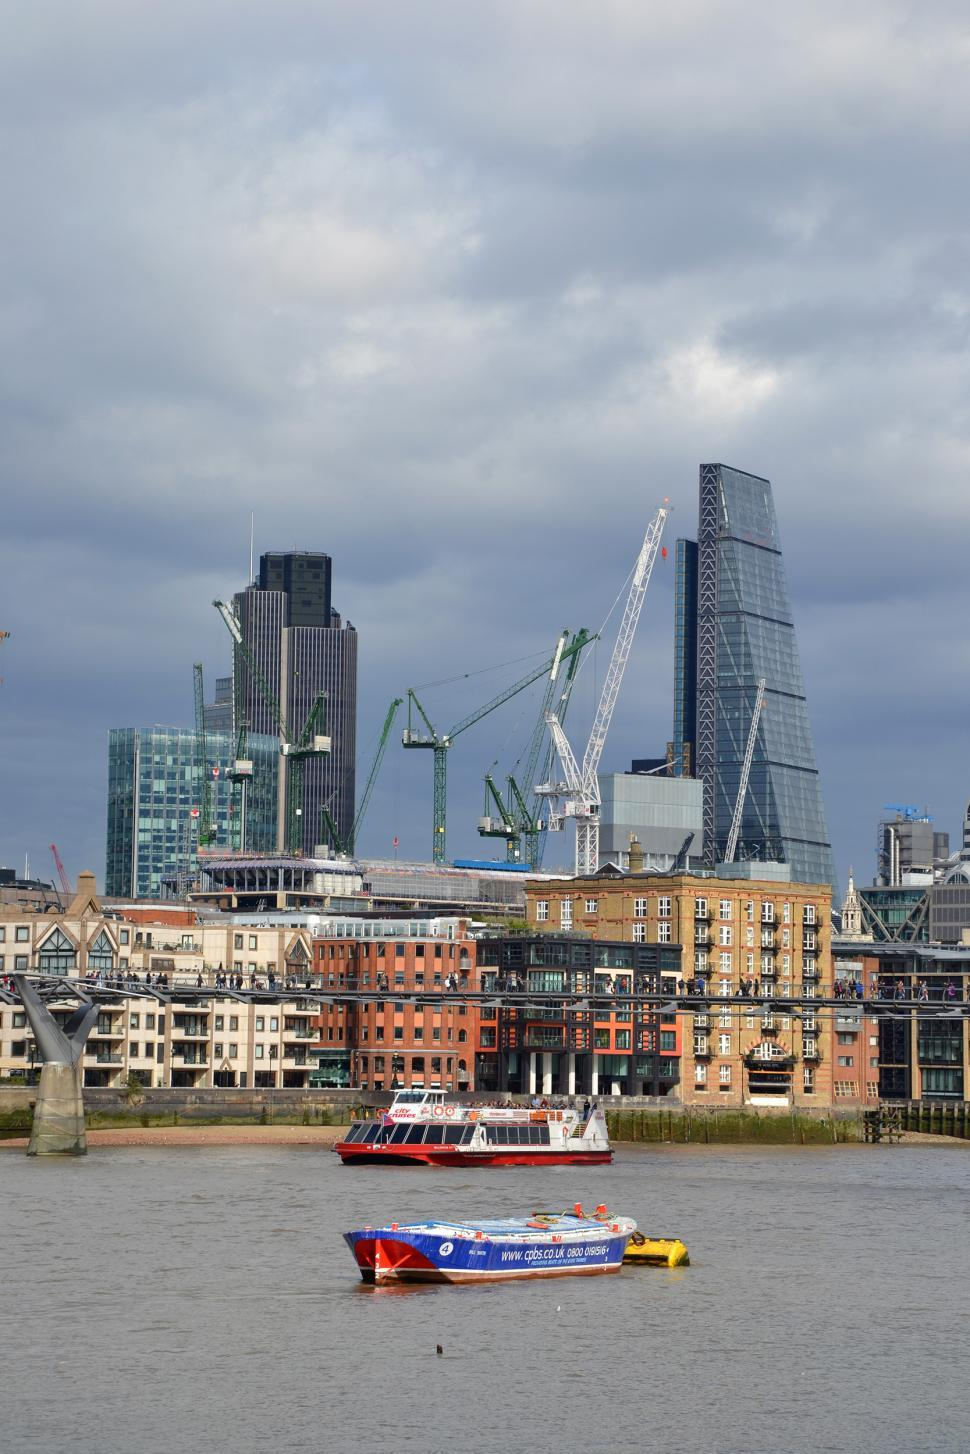 Download Free Stock HD Photo of London City and river Thames Online